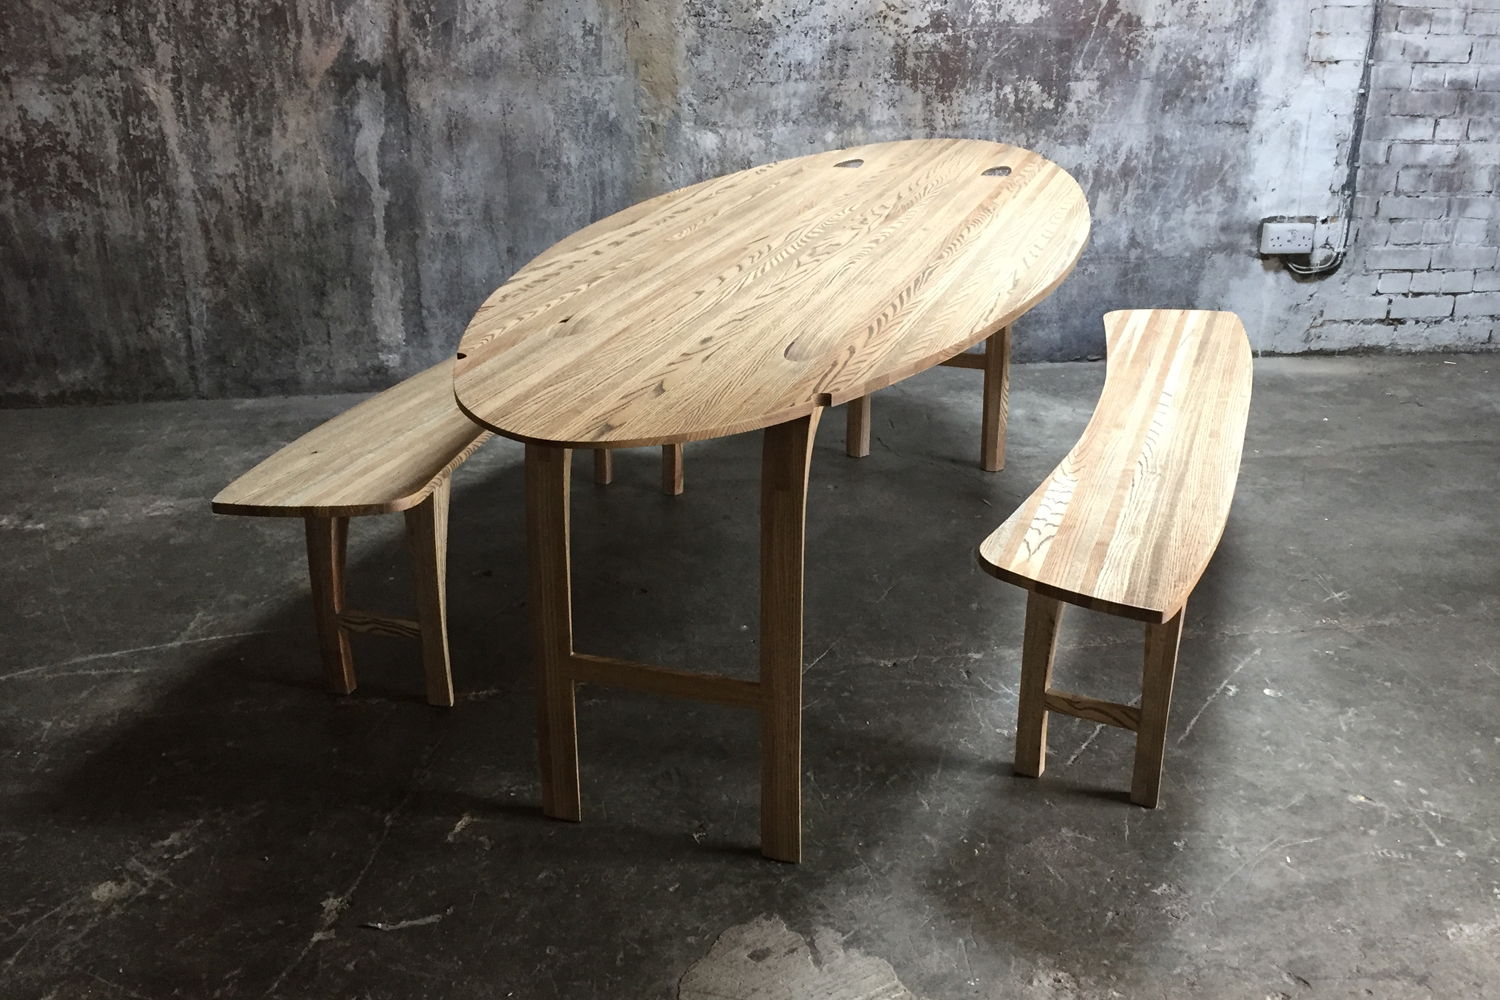 10_Ebony-grained-ash-dining-benches_5.jpg